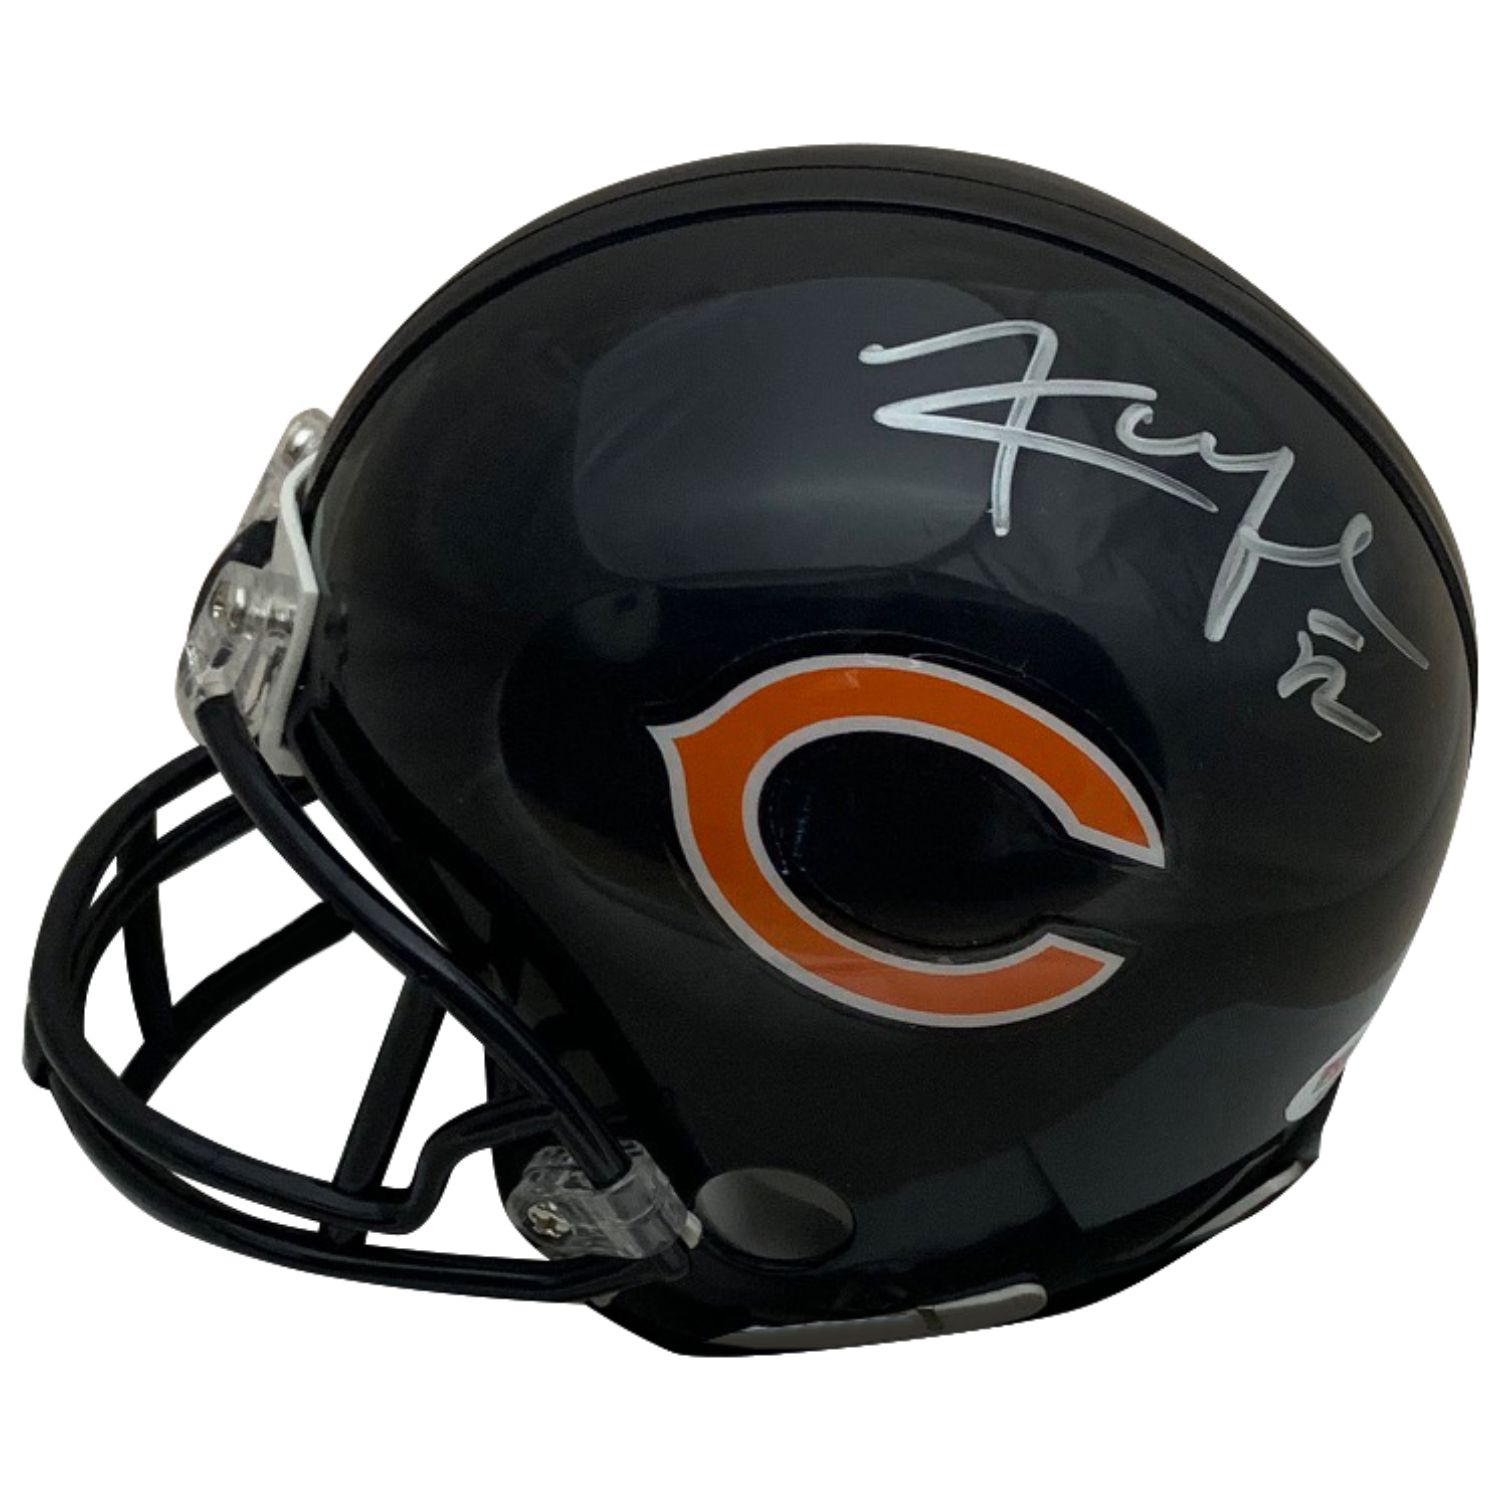 the latest c7039 df43d Khalil Mack Autographed Chicago Bears Signed Football Mini ...